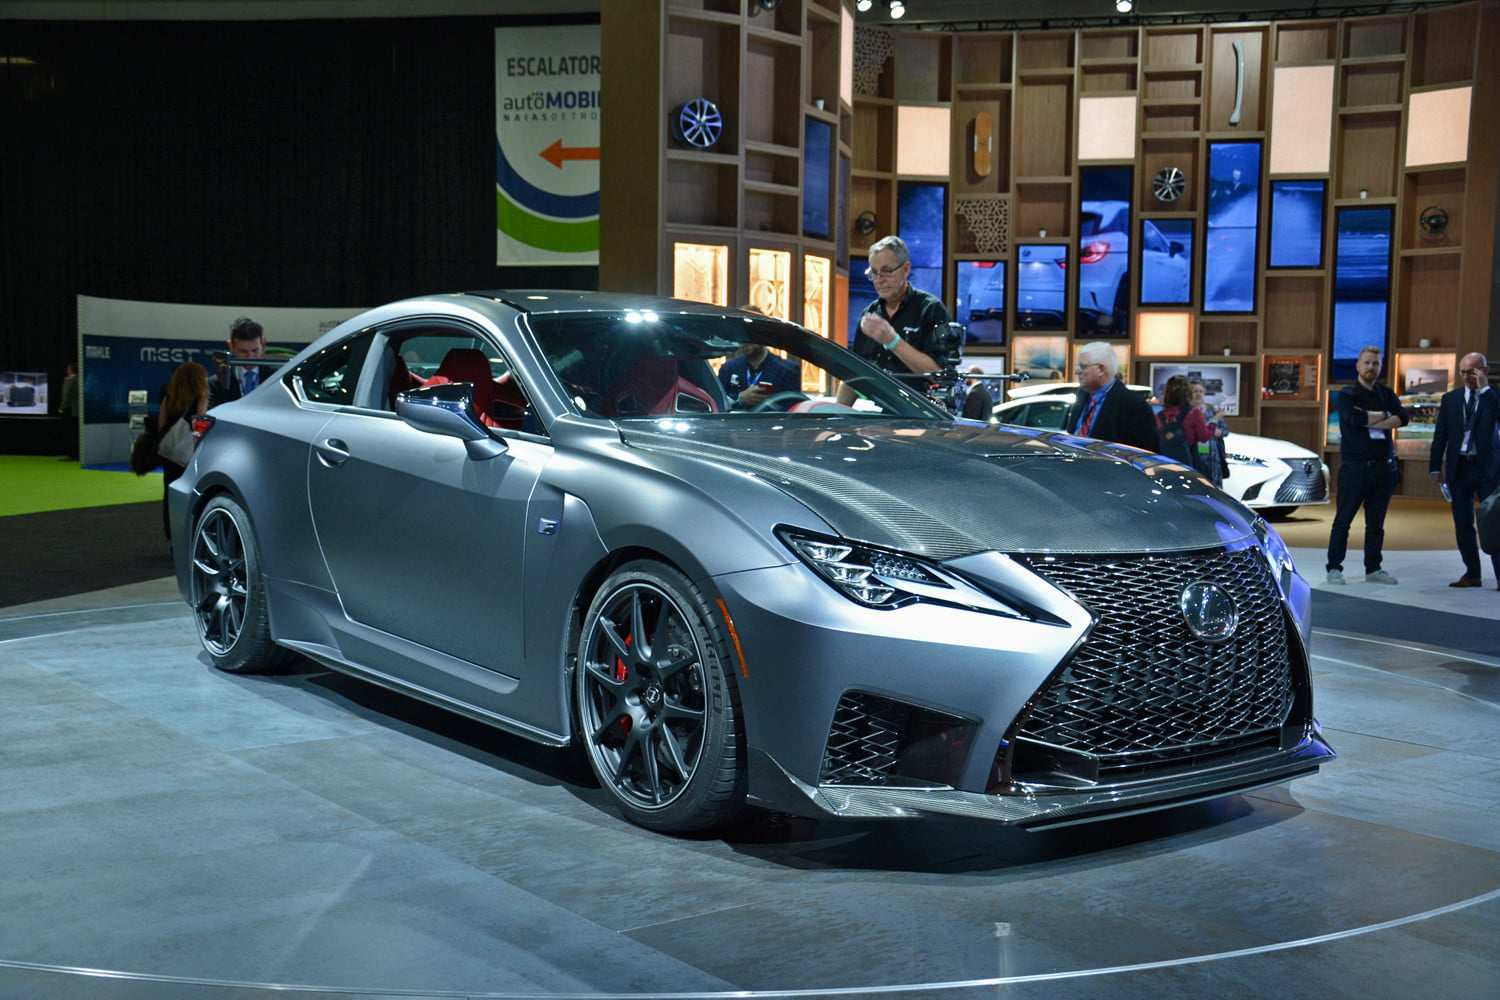 14 New 2020 Lexus Is BMW Engine Exterior and Interior for 2020 Lexus Is BMW Engine